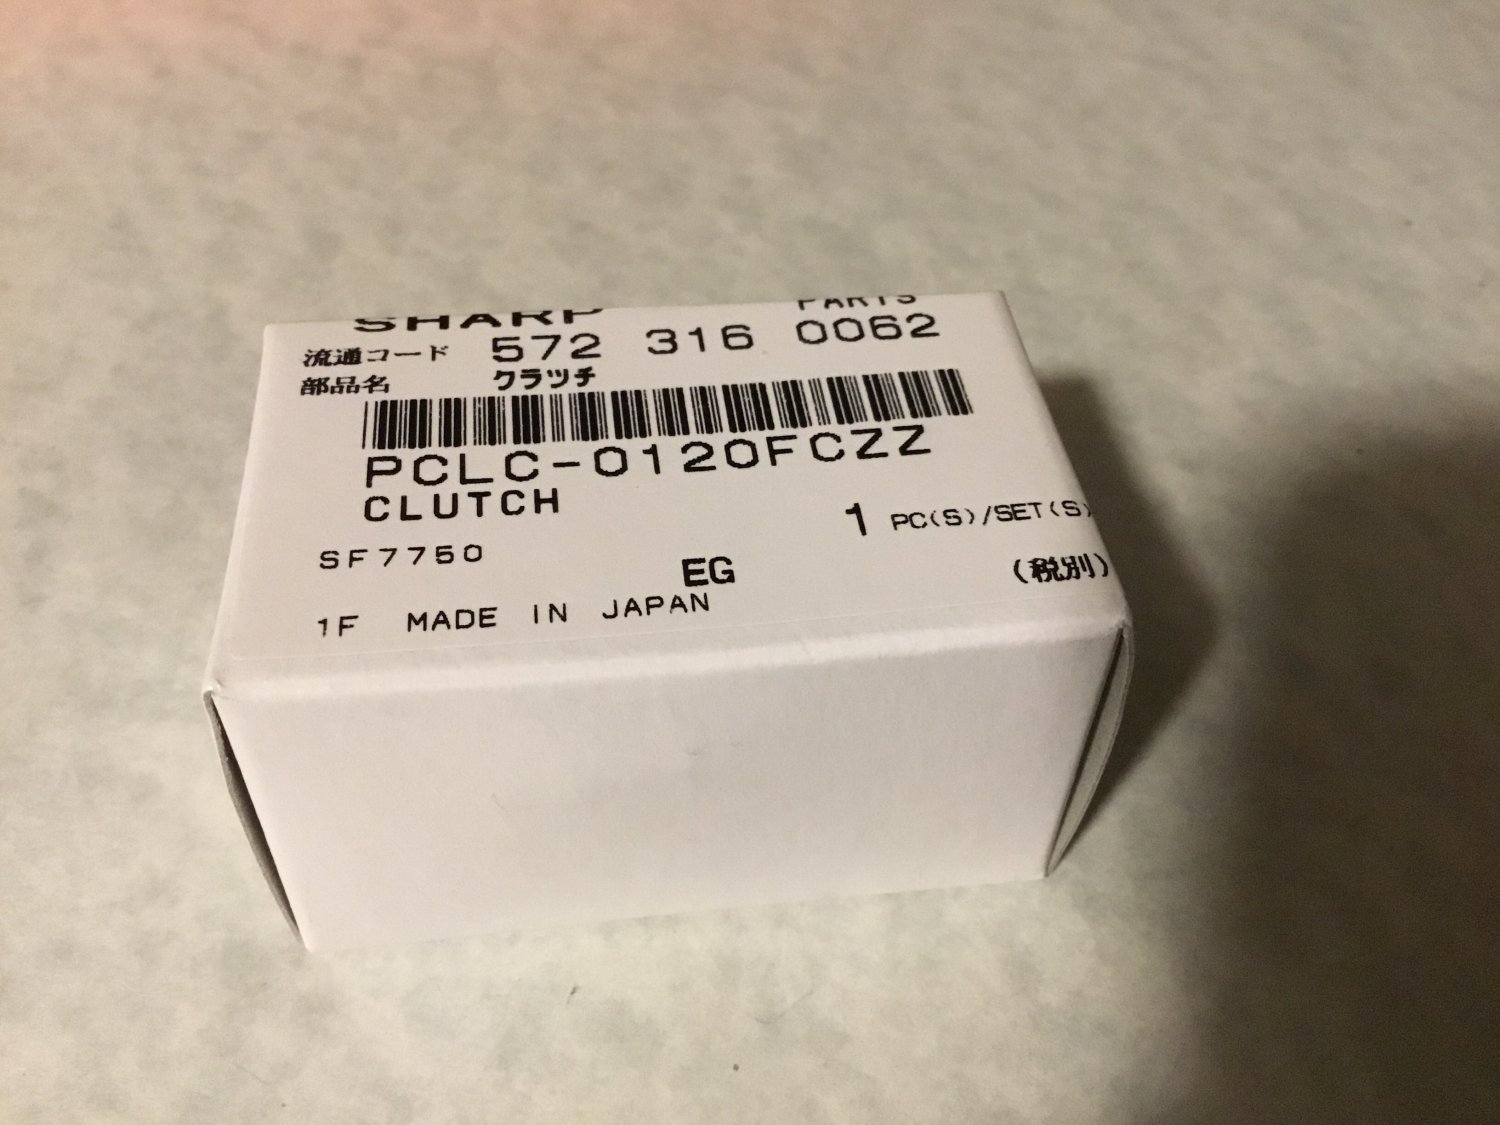 Sharp PCLC-0120FCZZ paper feed clutch for SF7750